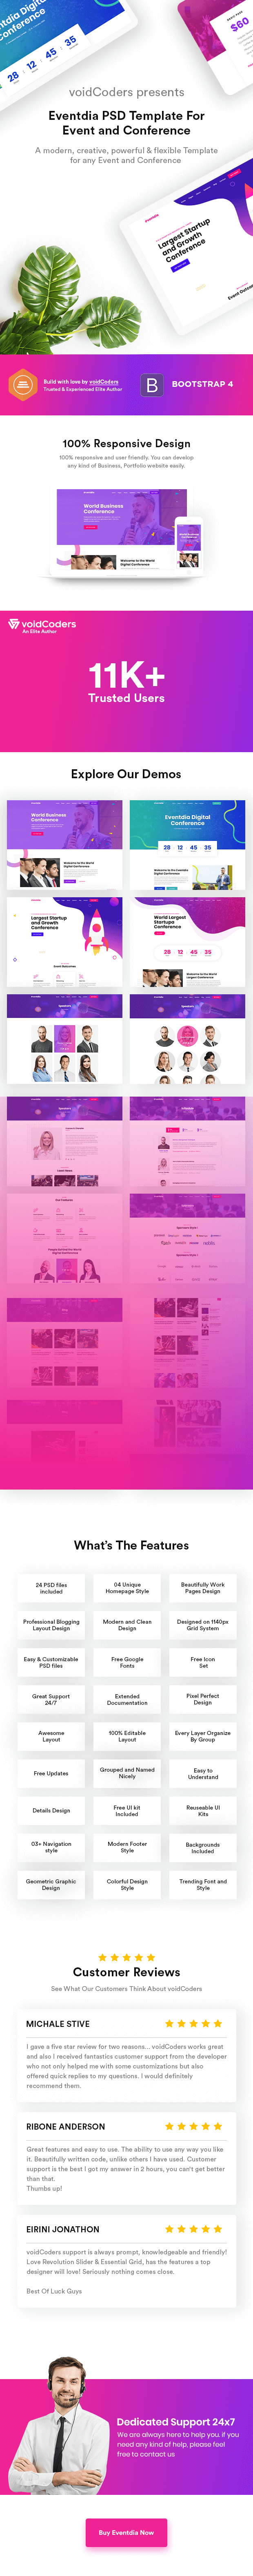 Eventdia - Event and Conference PSD Template - 1